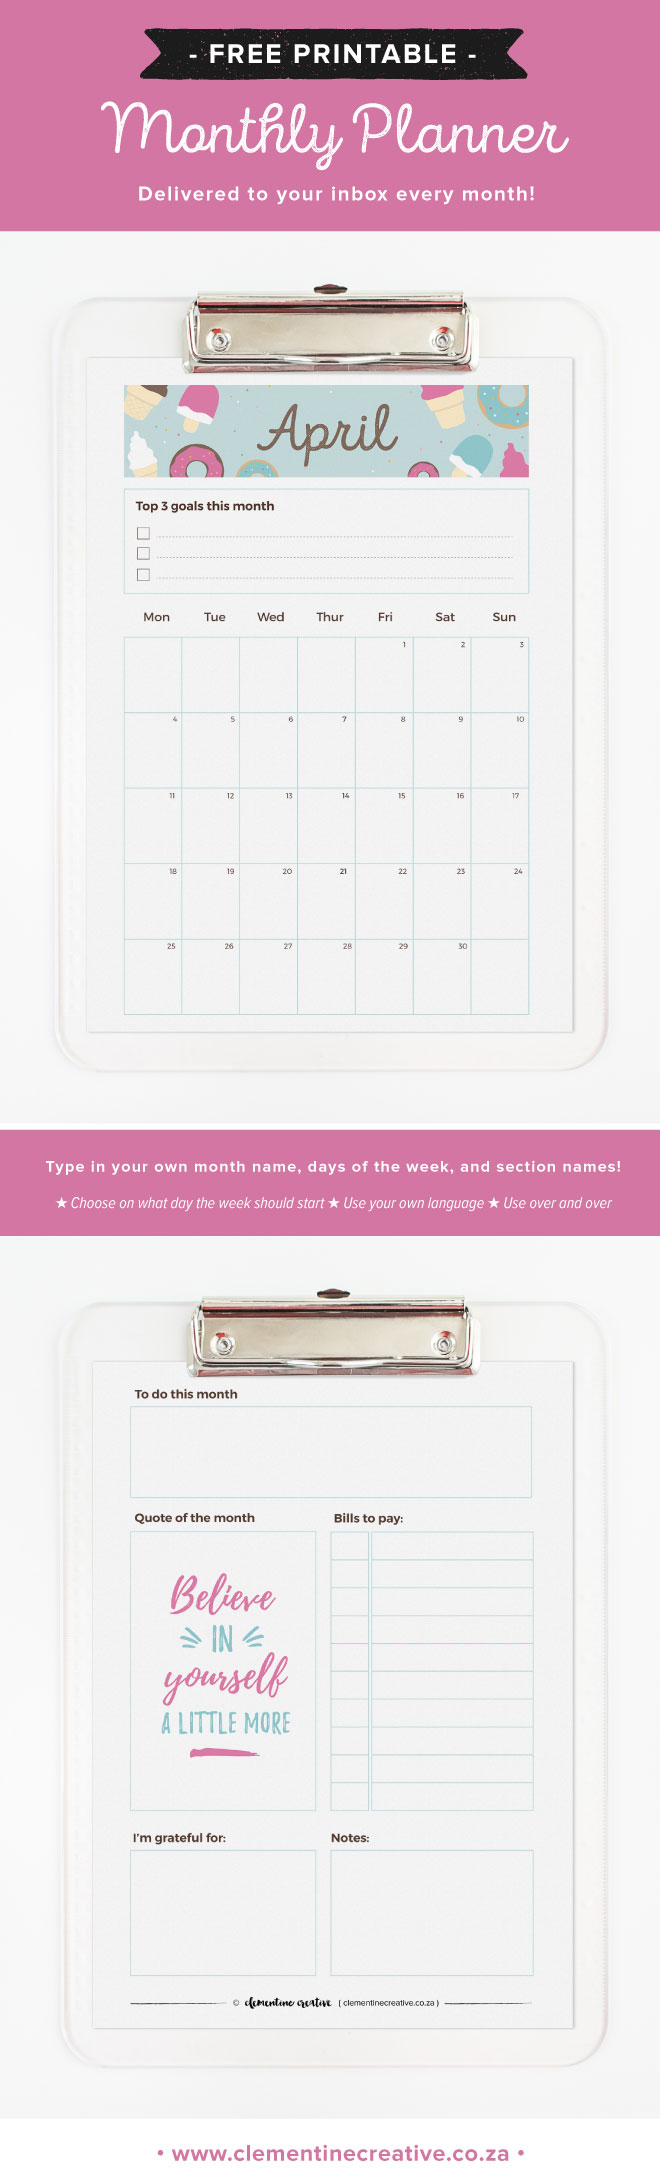 Download this free printable planner for April 2016. It comes in two sizes - A5 for a large Kikki.k or A5 Filofax and A4.